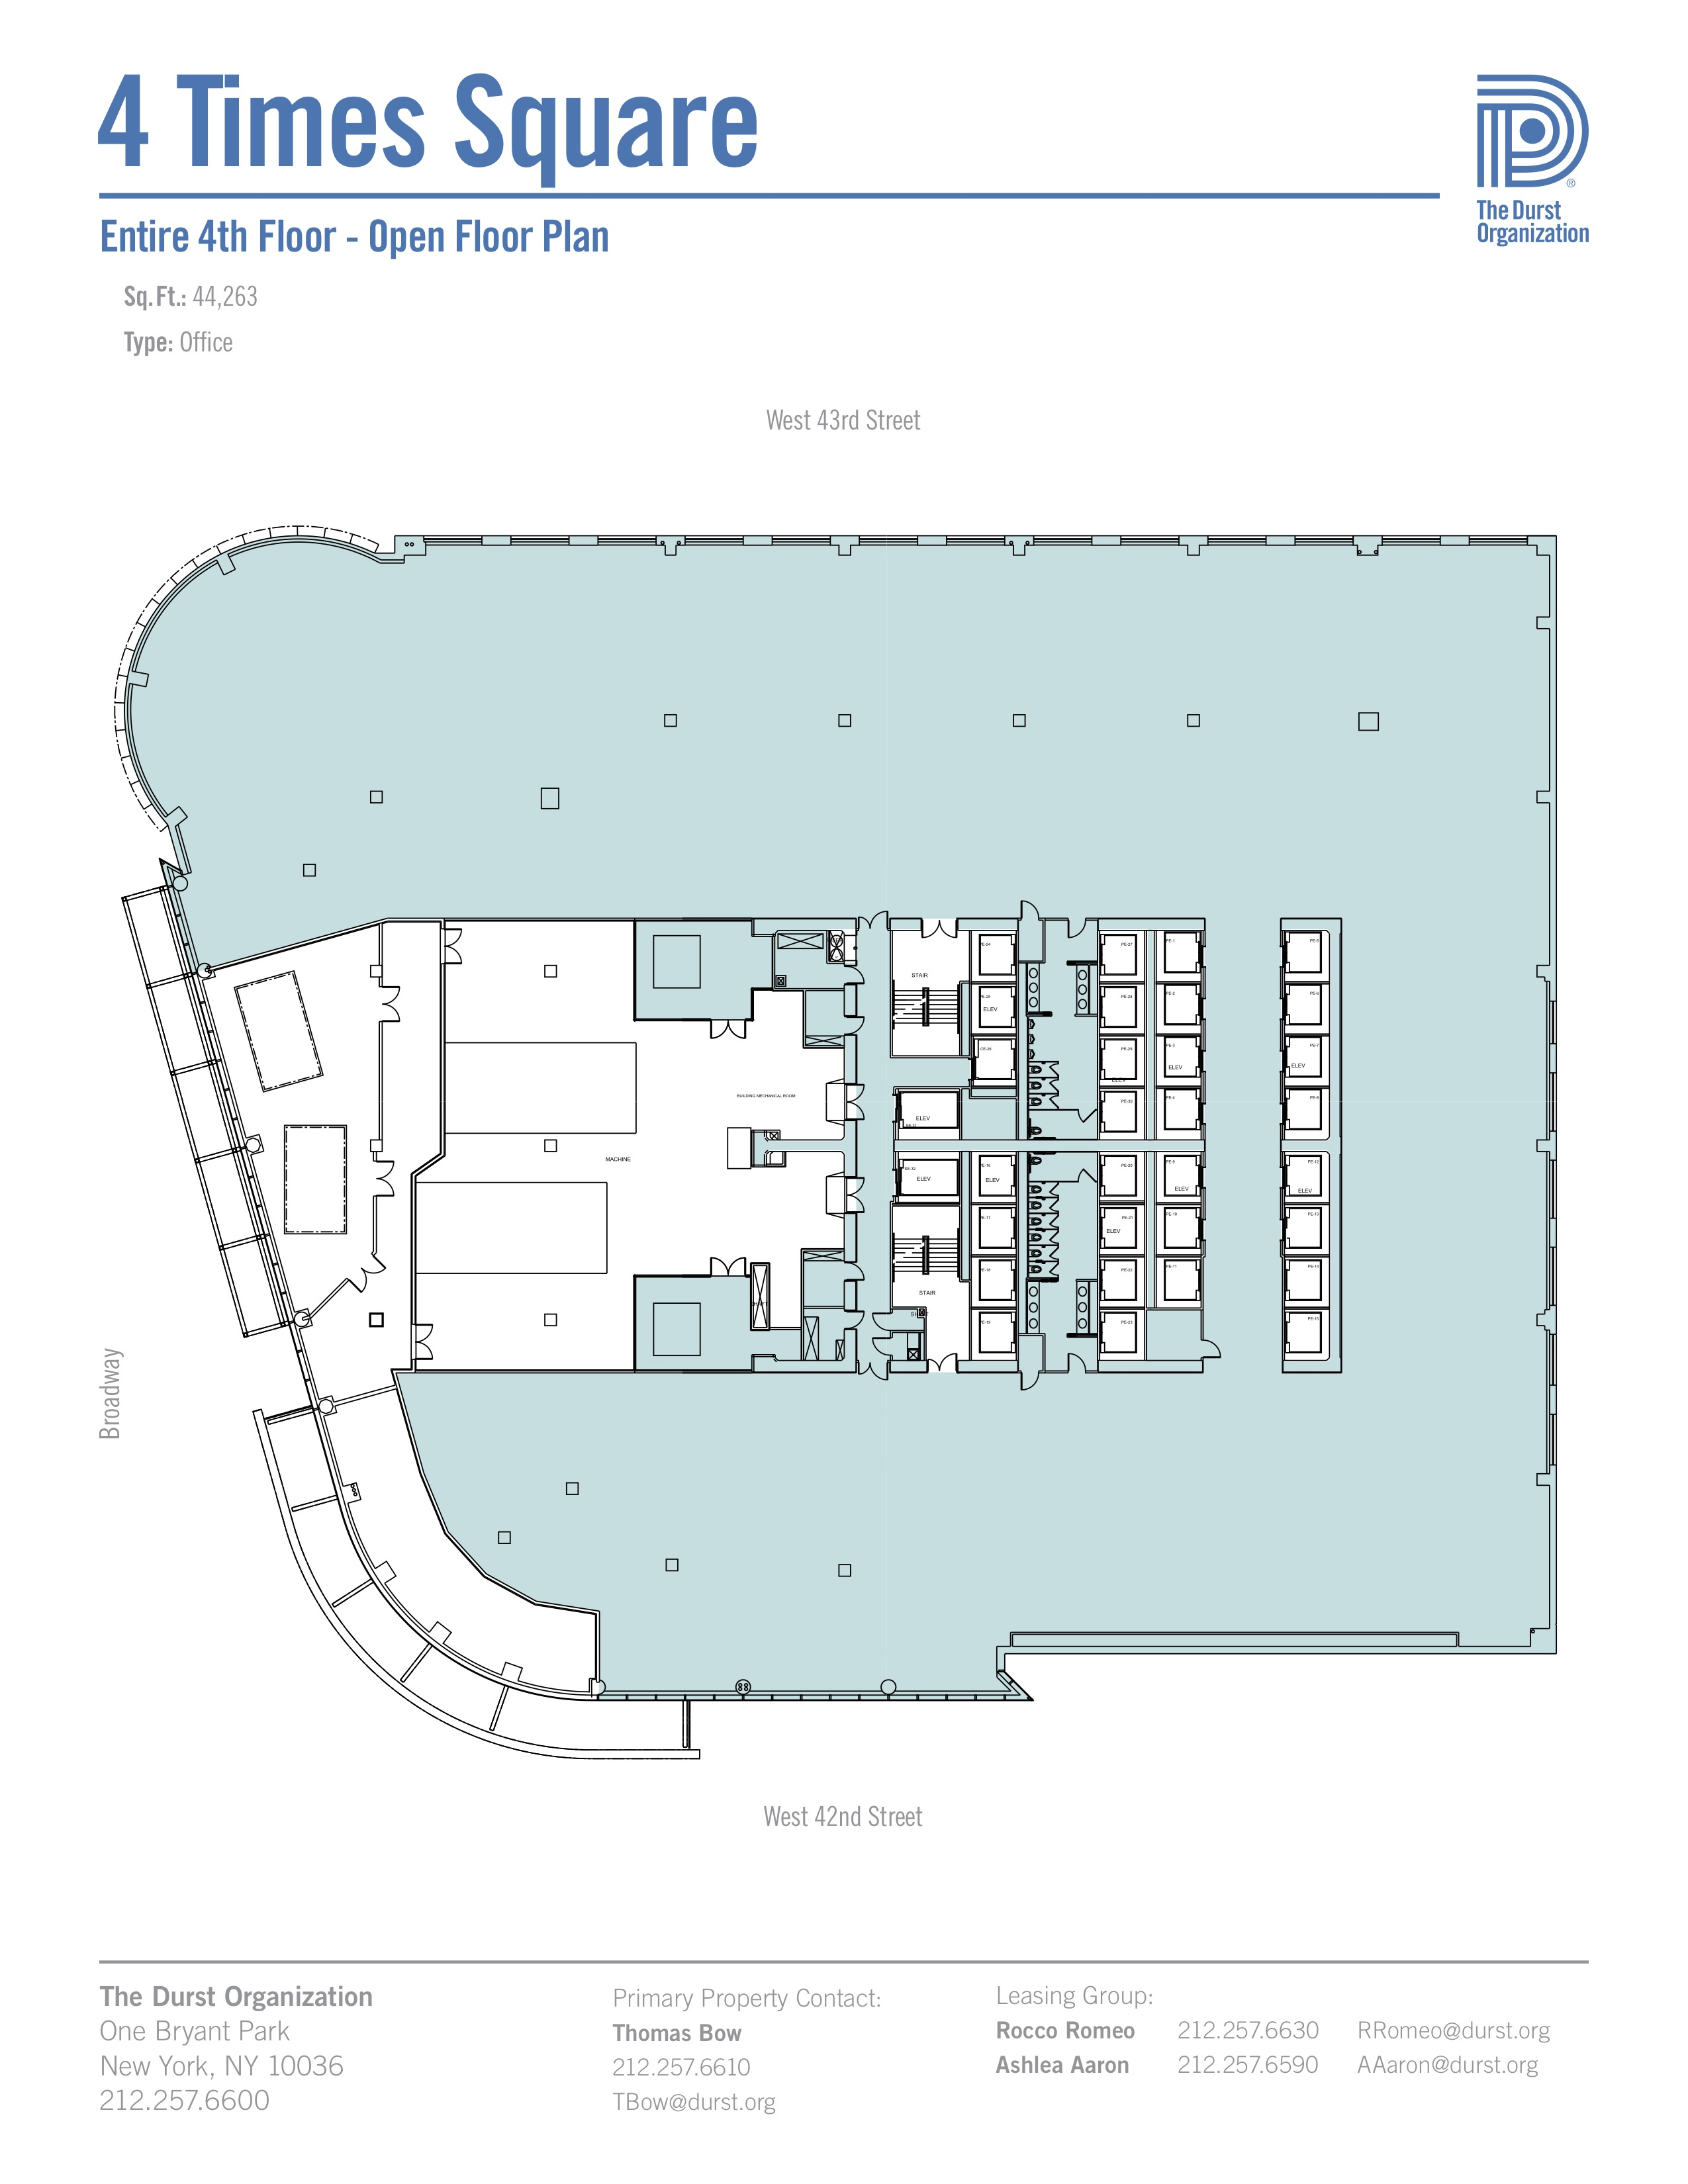 4 times square conde nast building floorplans new york city for New build floor plans